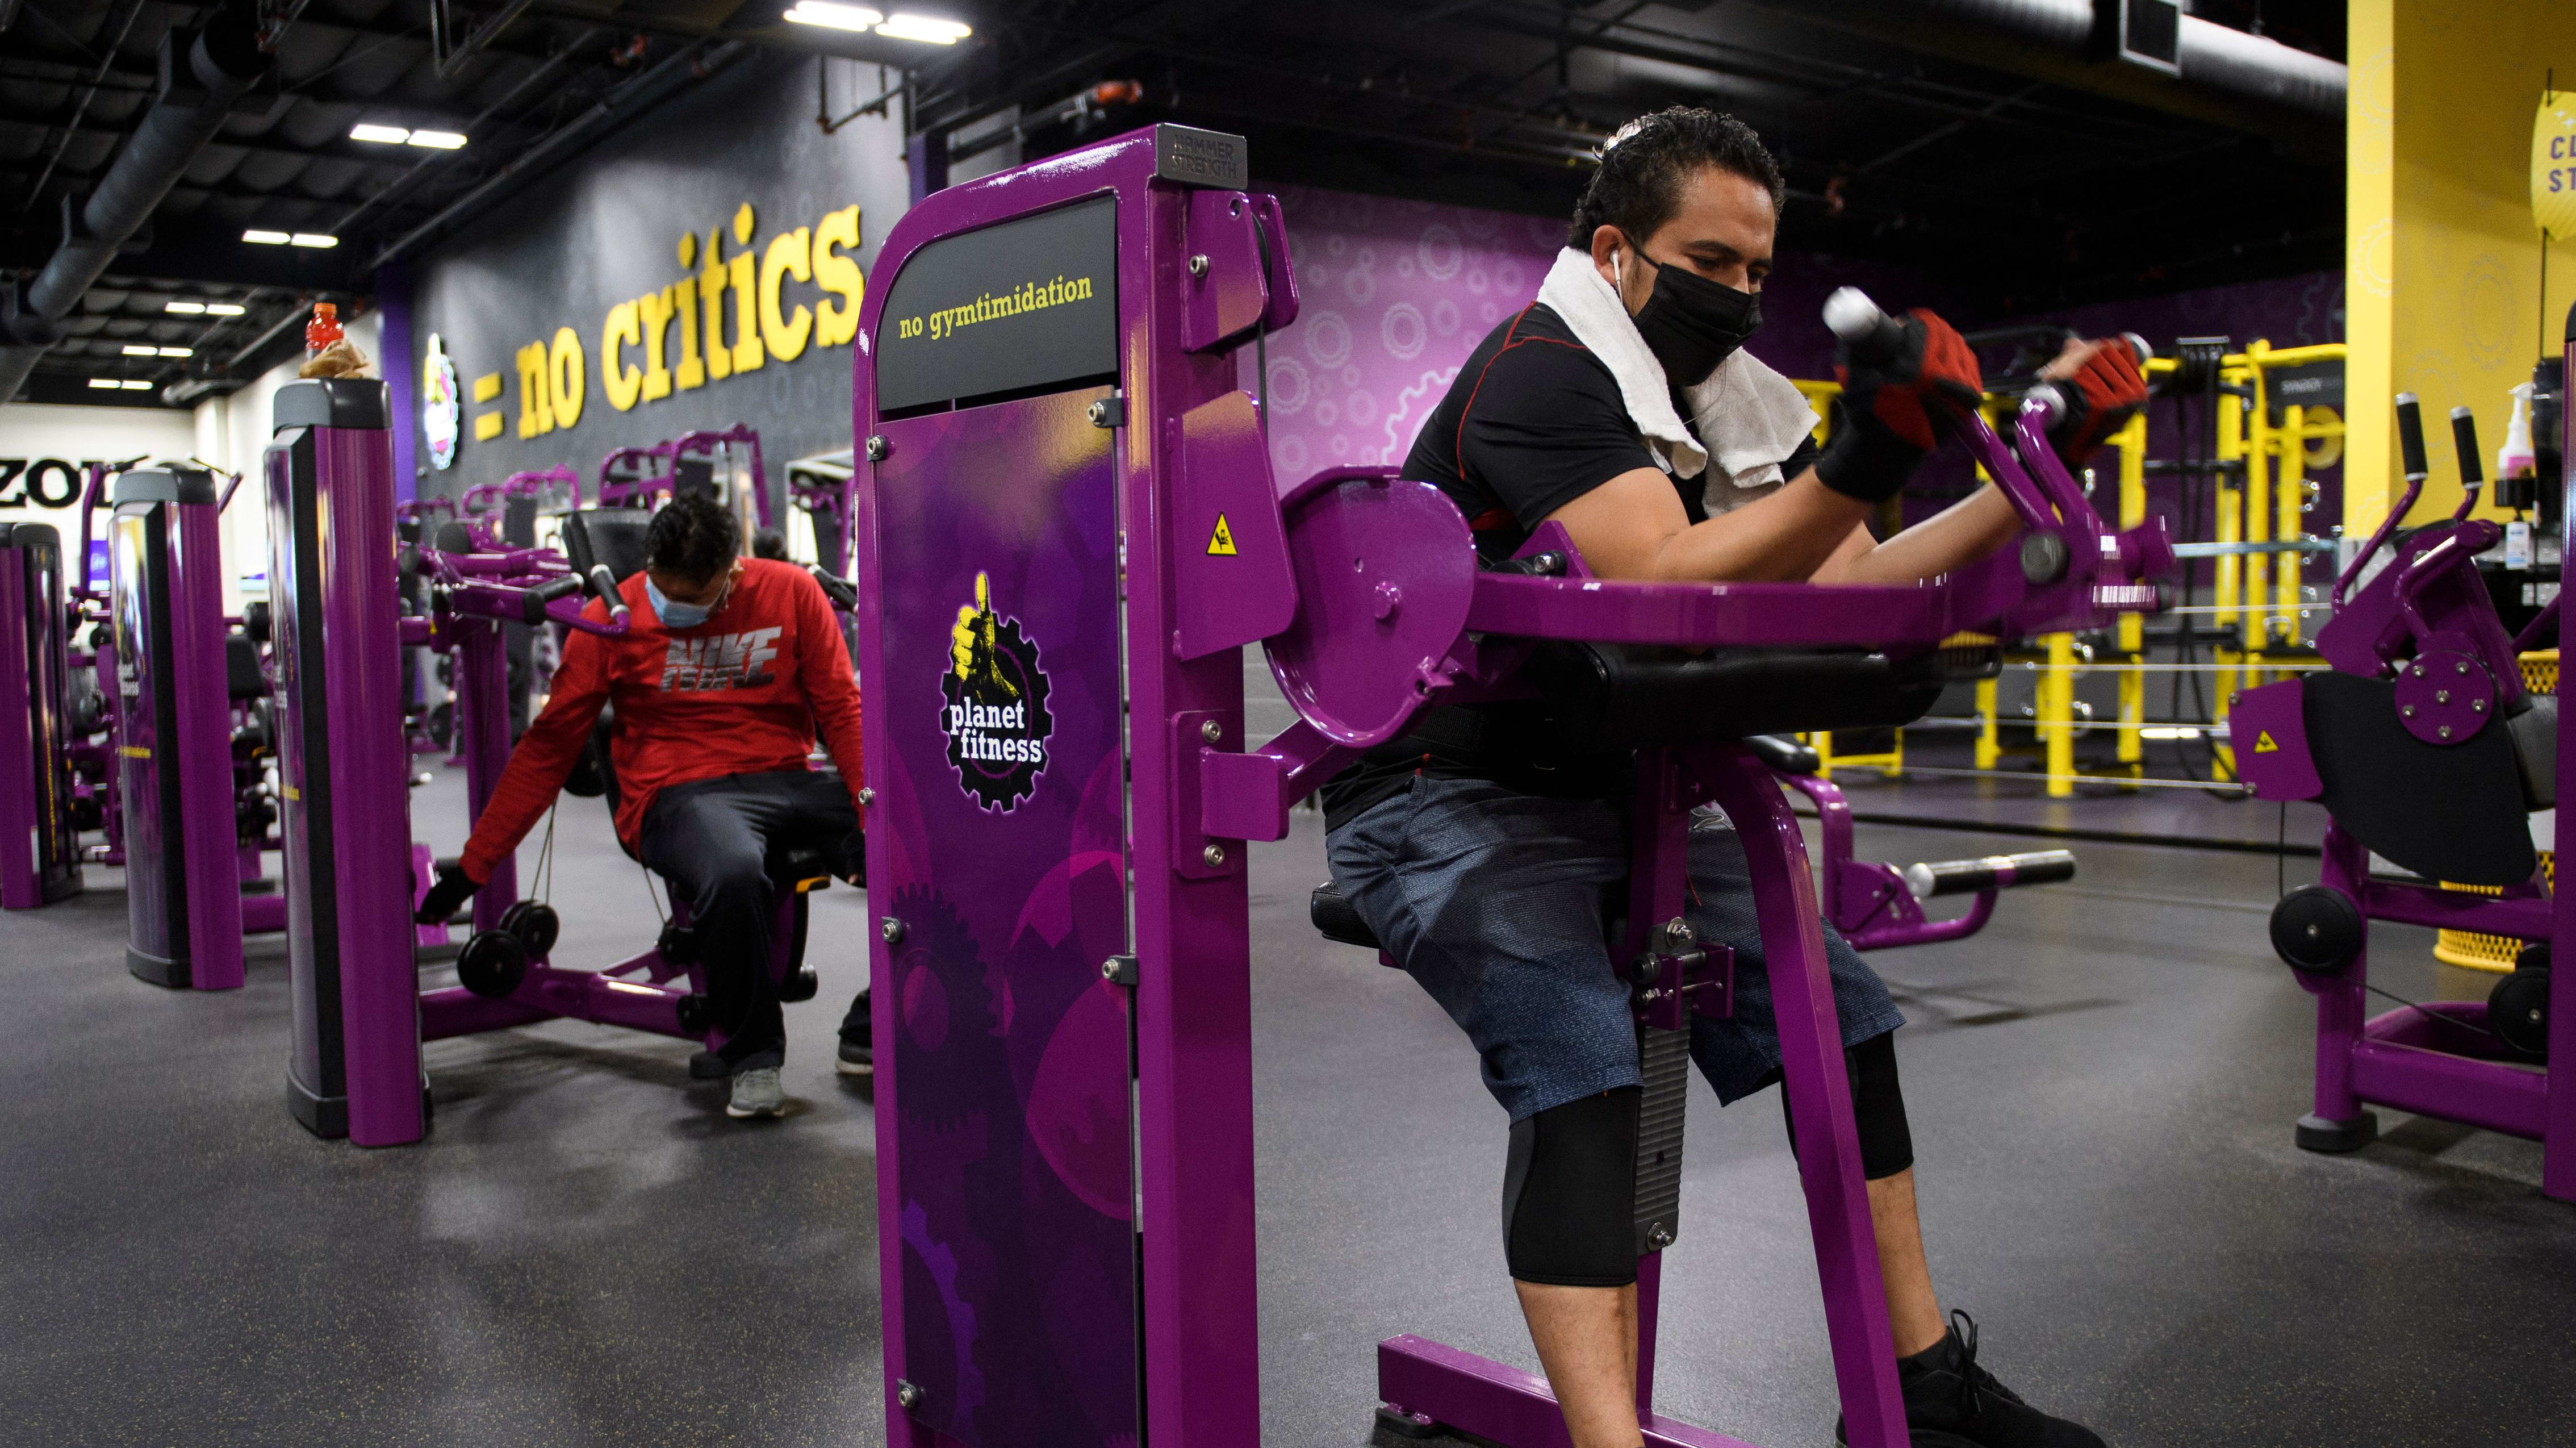 Planet Fitness Ceo On Gym Vaccine Mandate We Re Hoping It S Short Lived